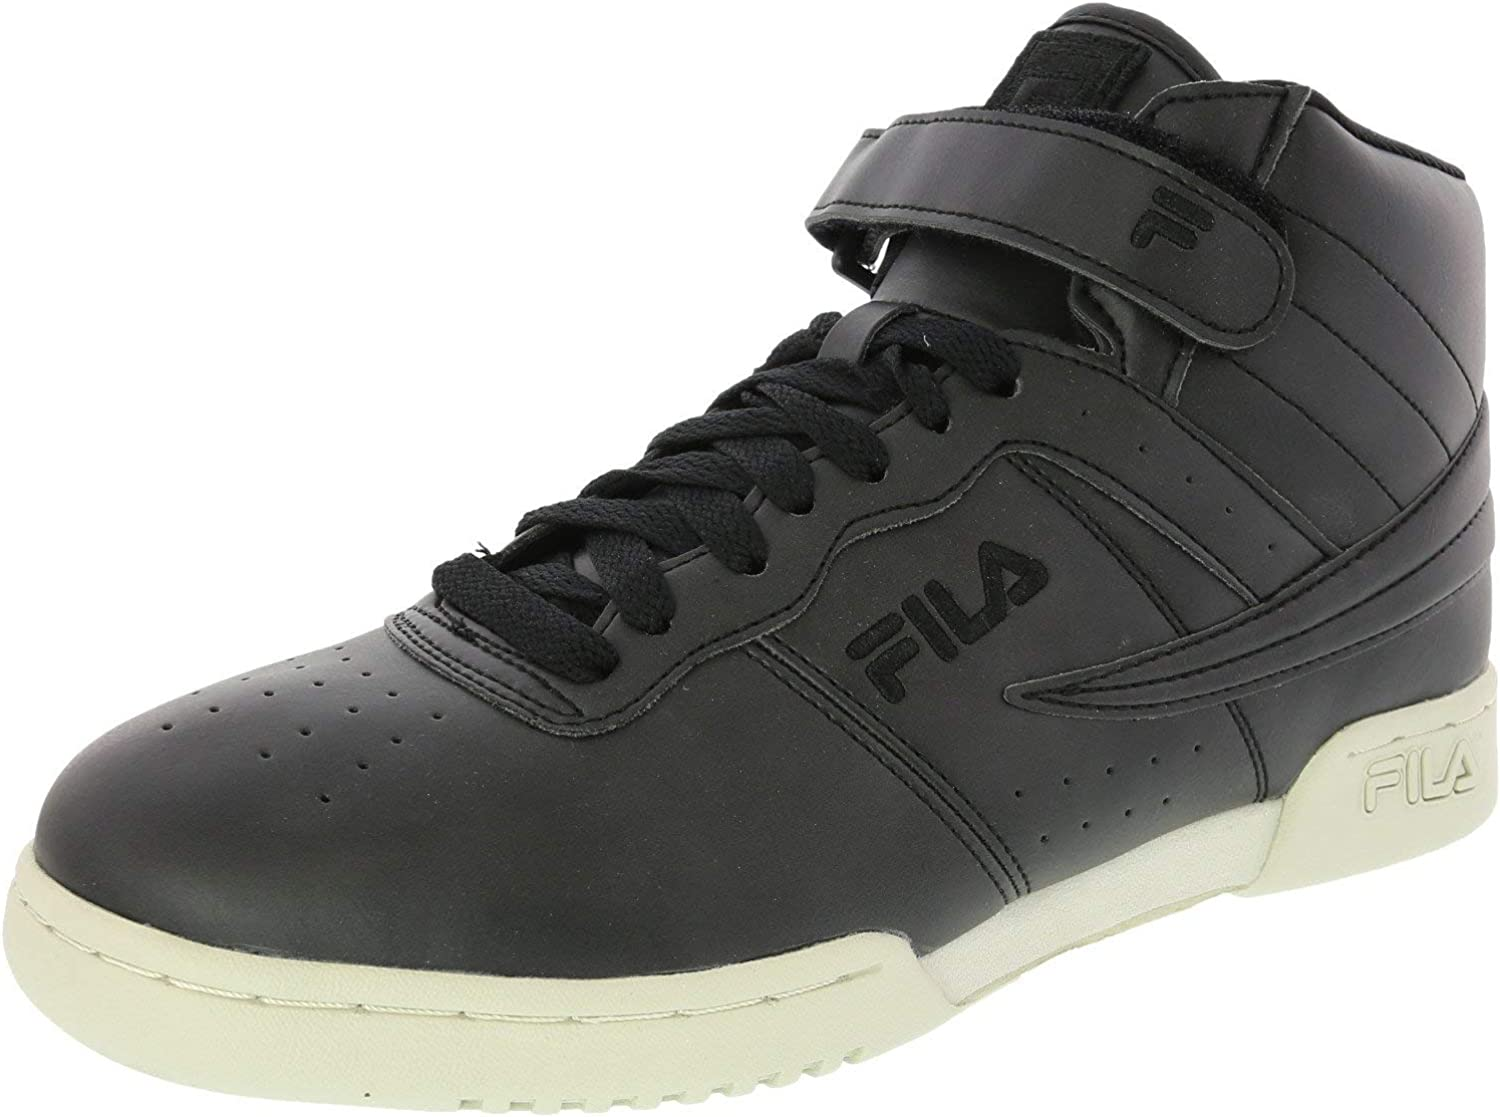 Fila Mens F-13 Distressed Leather Hight Top Lace Up Running Sneaker